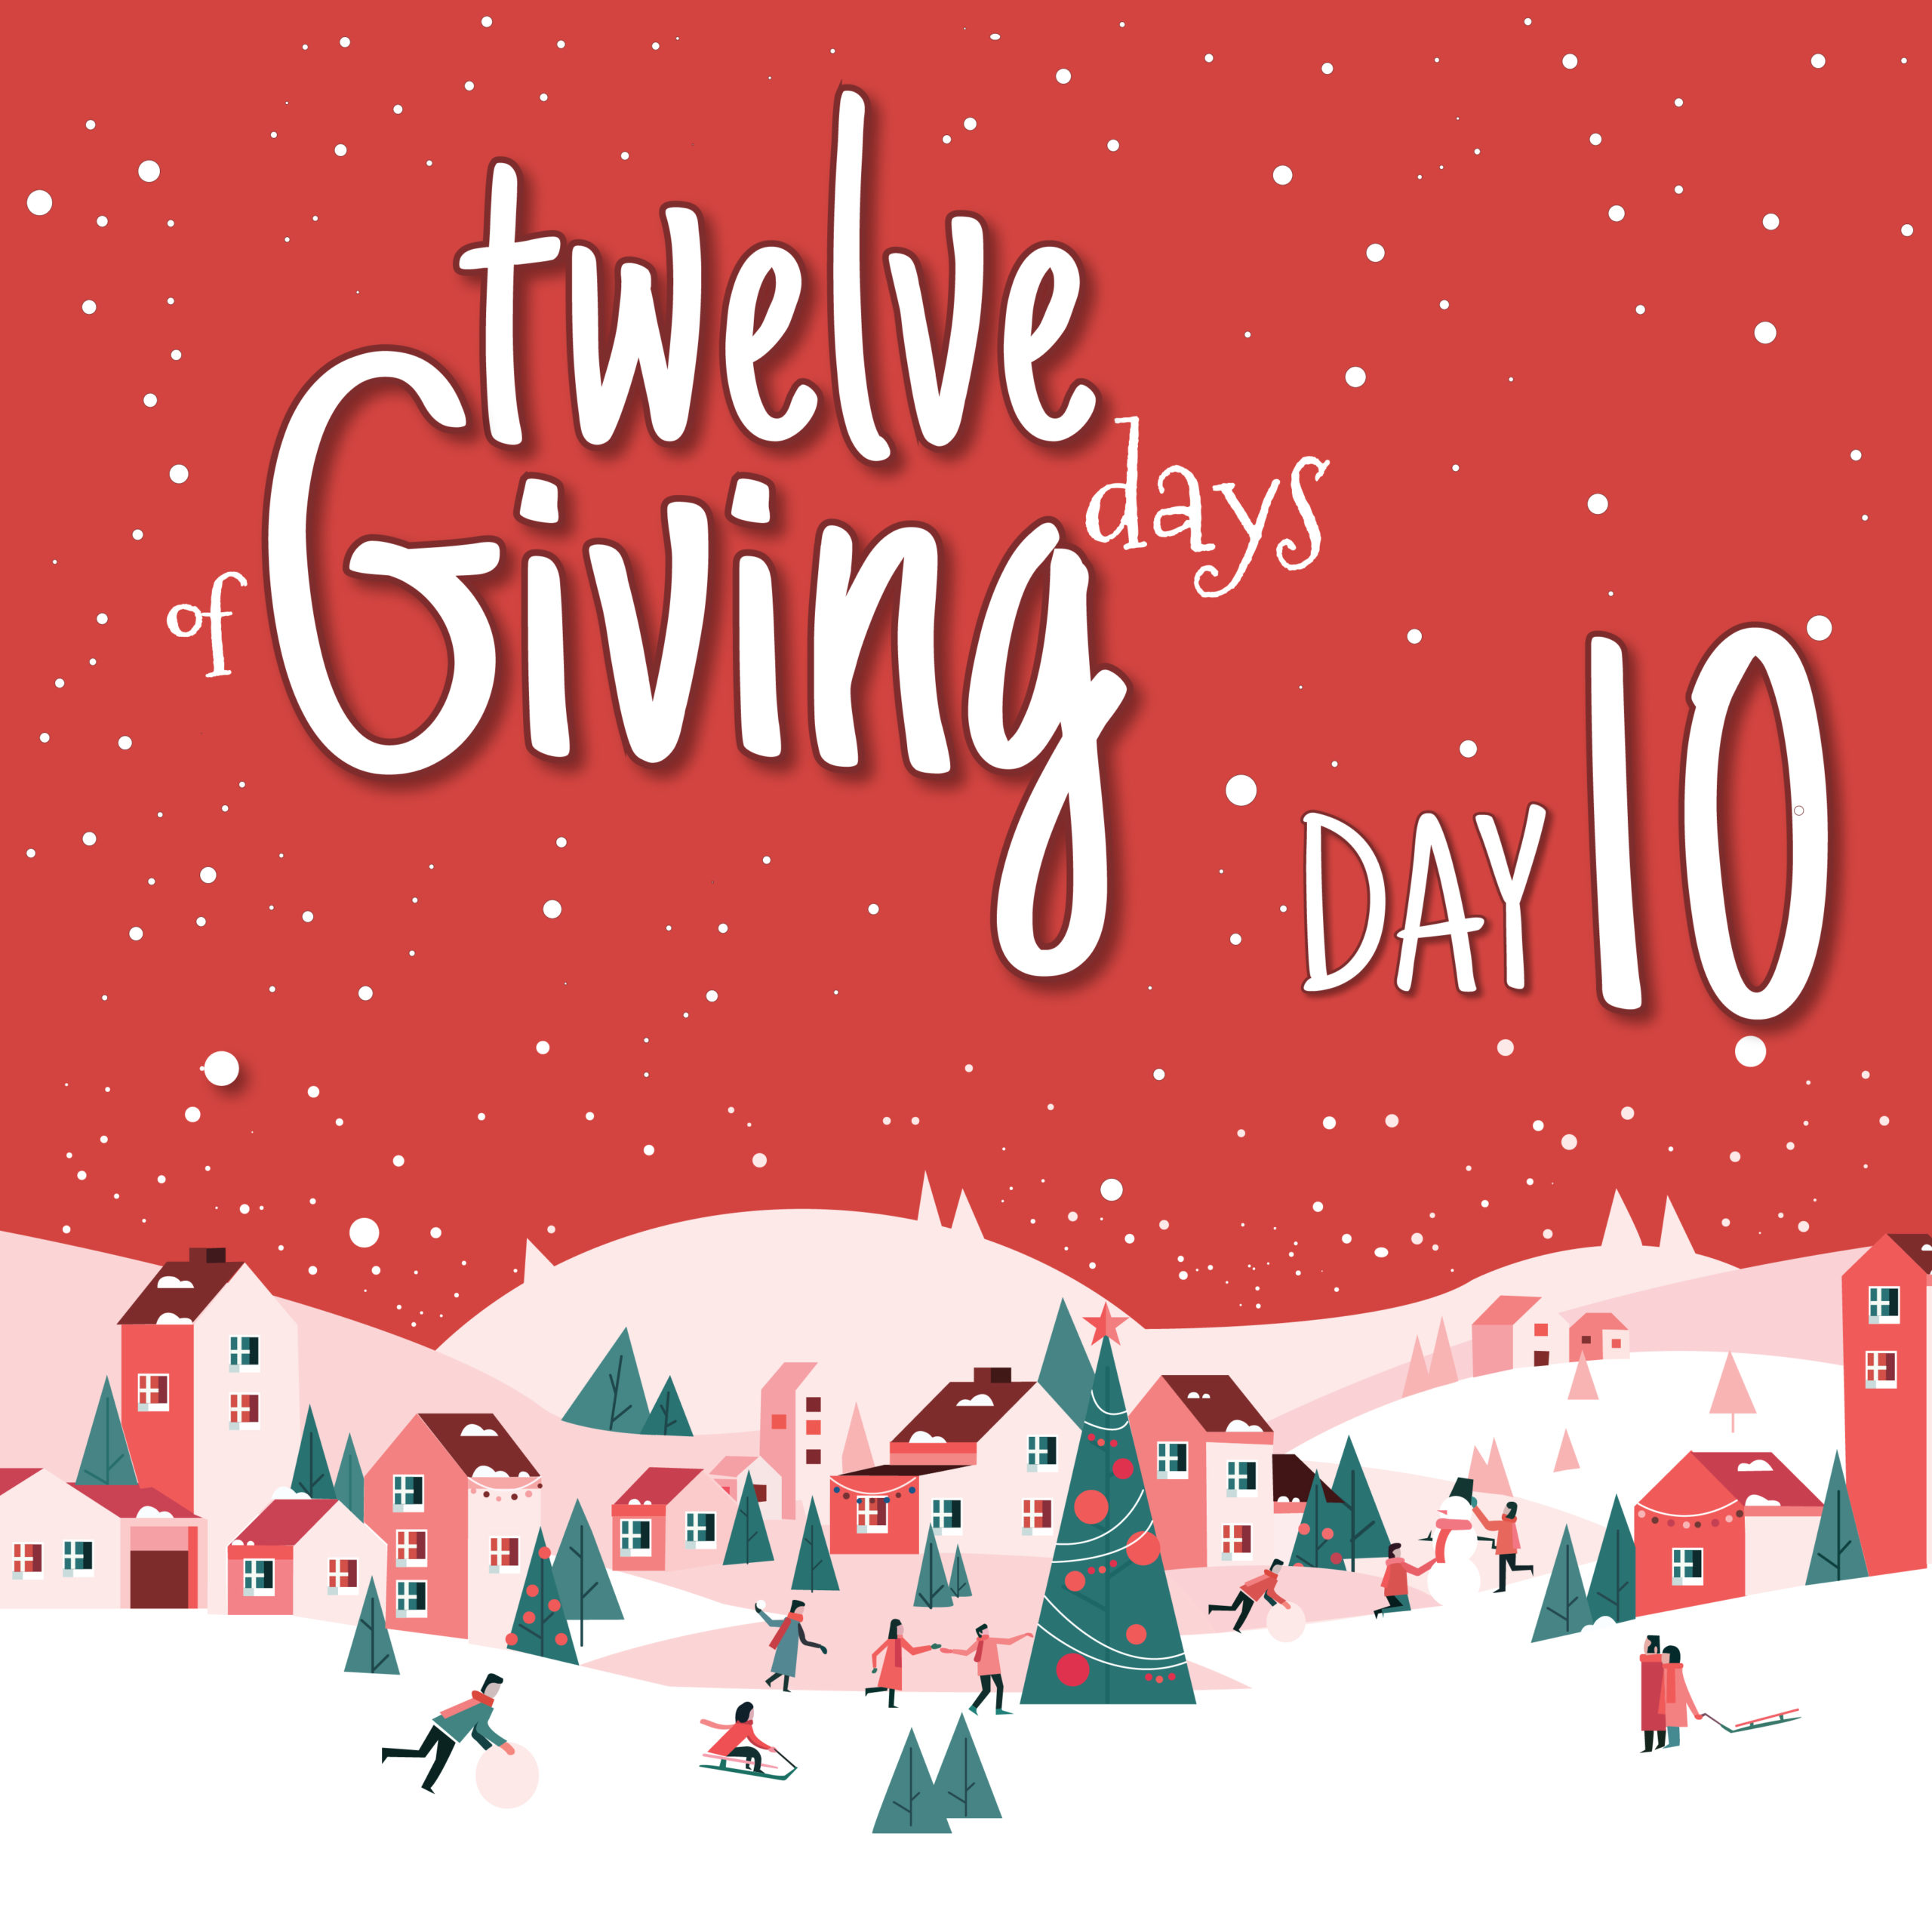 Day 10 of 12 Days of Giving GIVEAWAY with Creative Scrapbooker Magazine Graphics